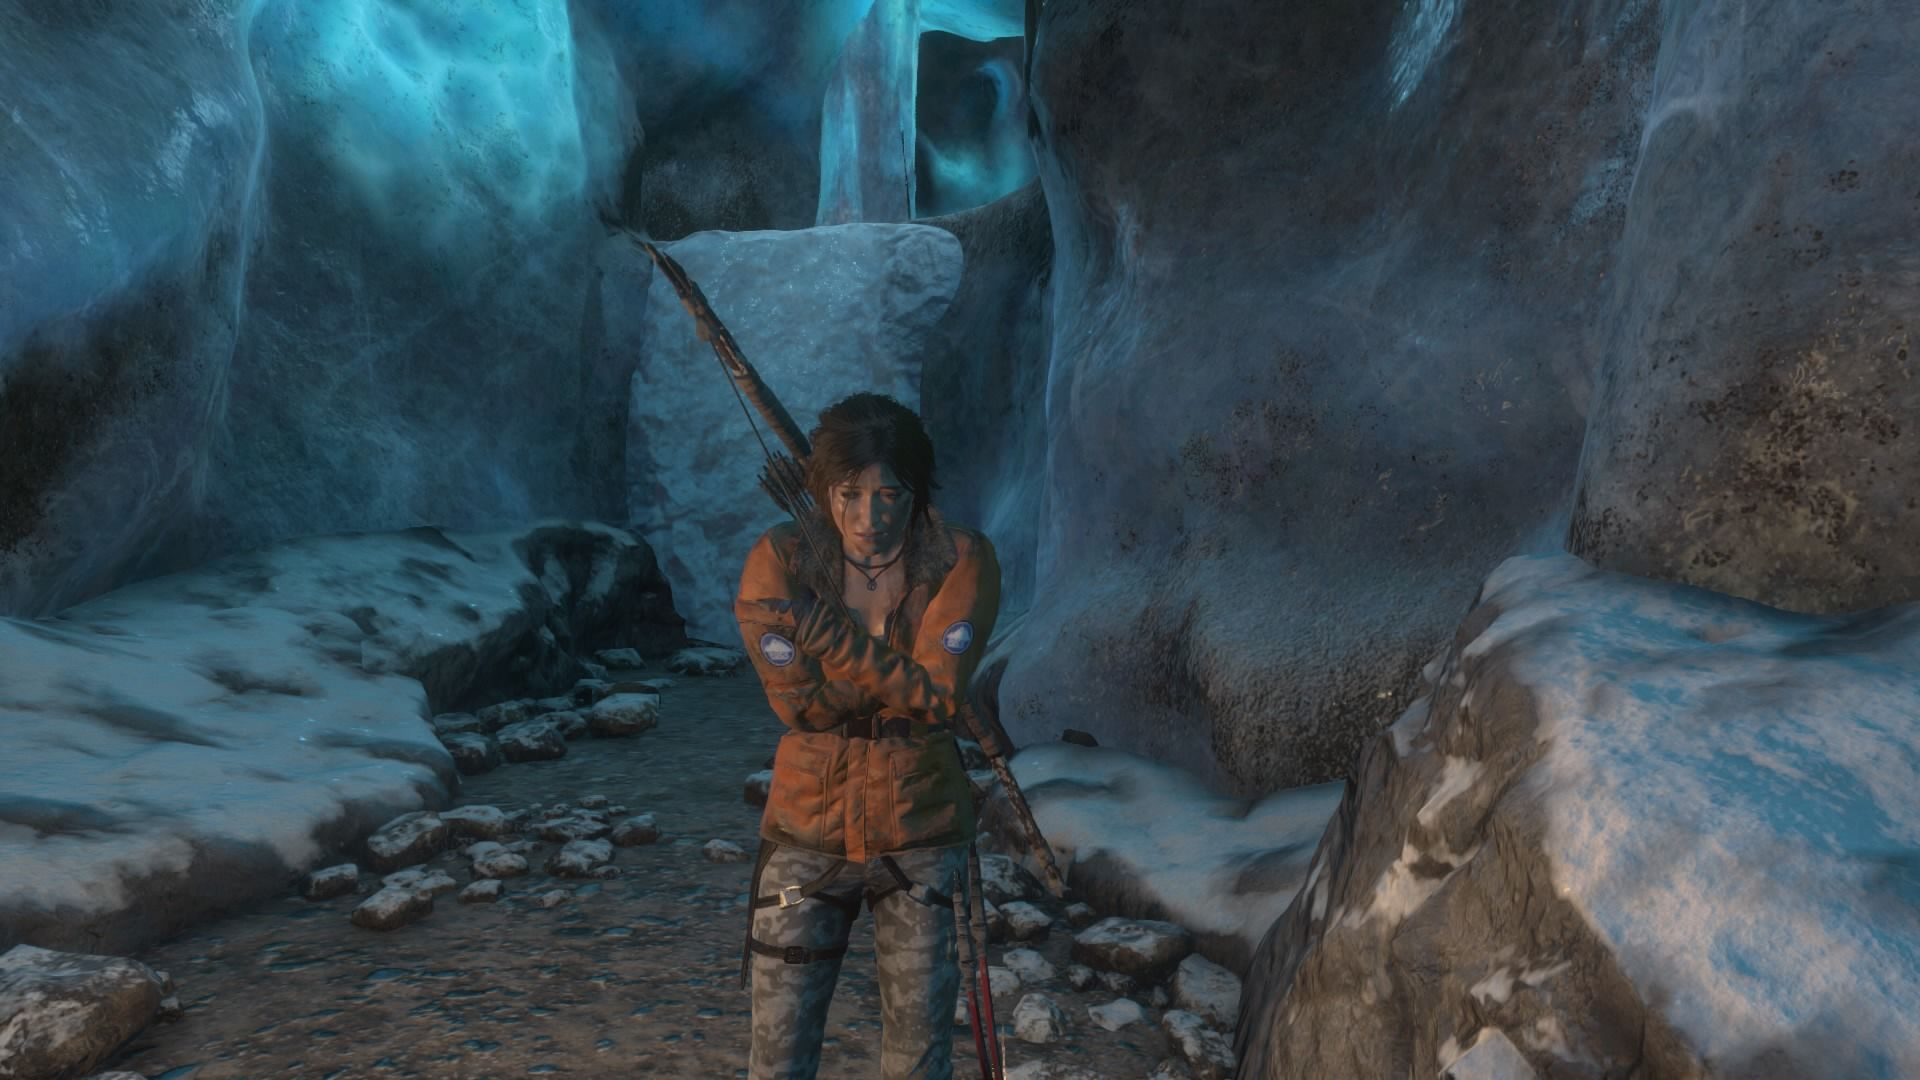 Rise Of The Tomb Raider 20 Year Celebration Screenshots For Sony Ps4 Pack Reimagined Antarctica Outfit In Action Front View